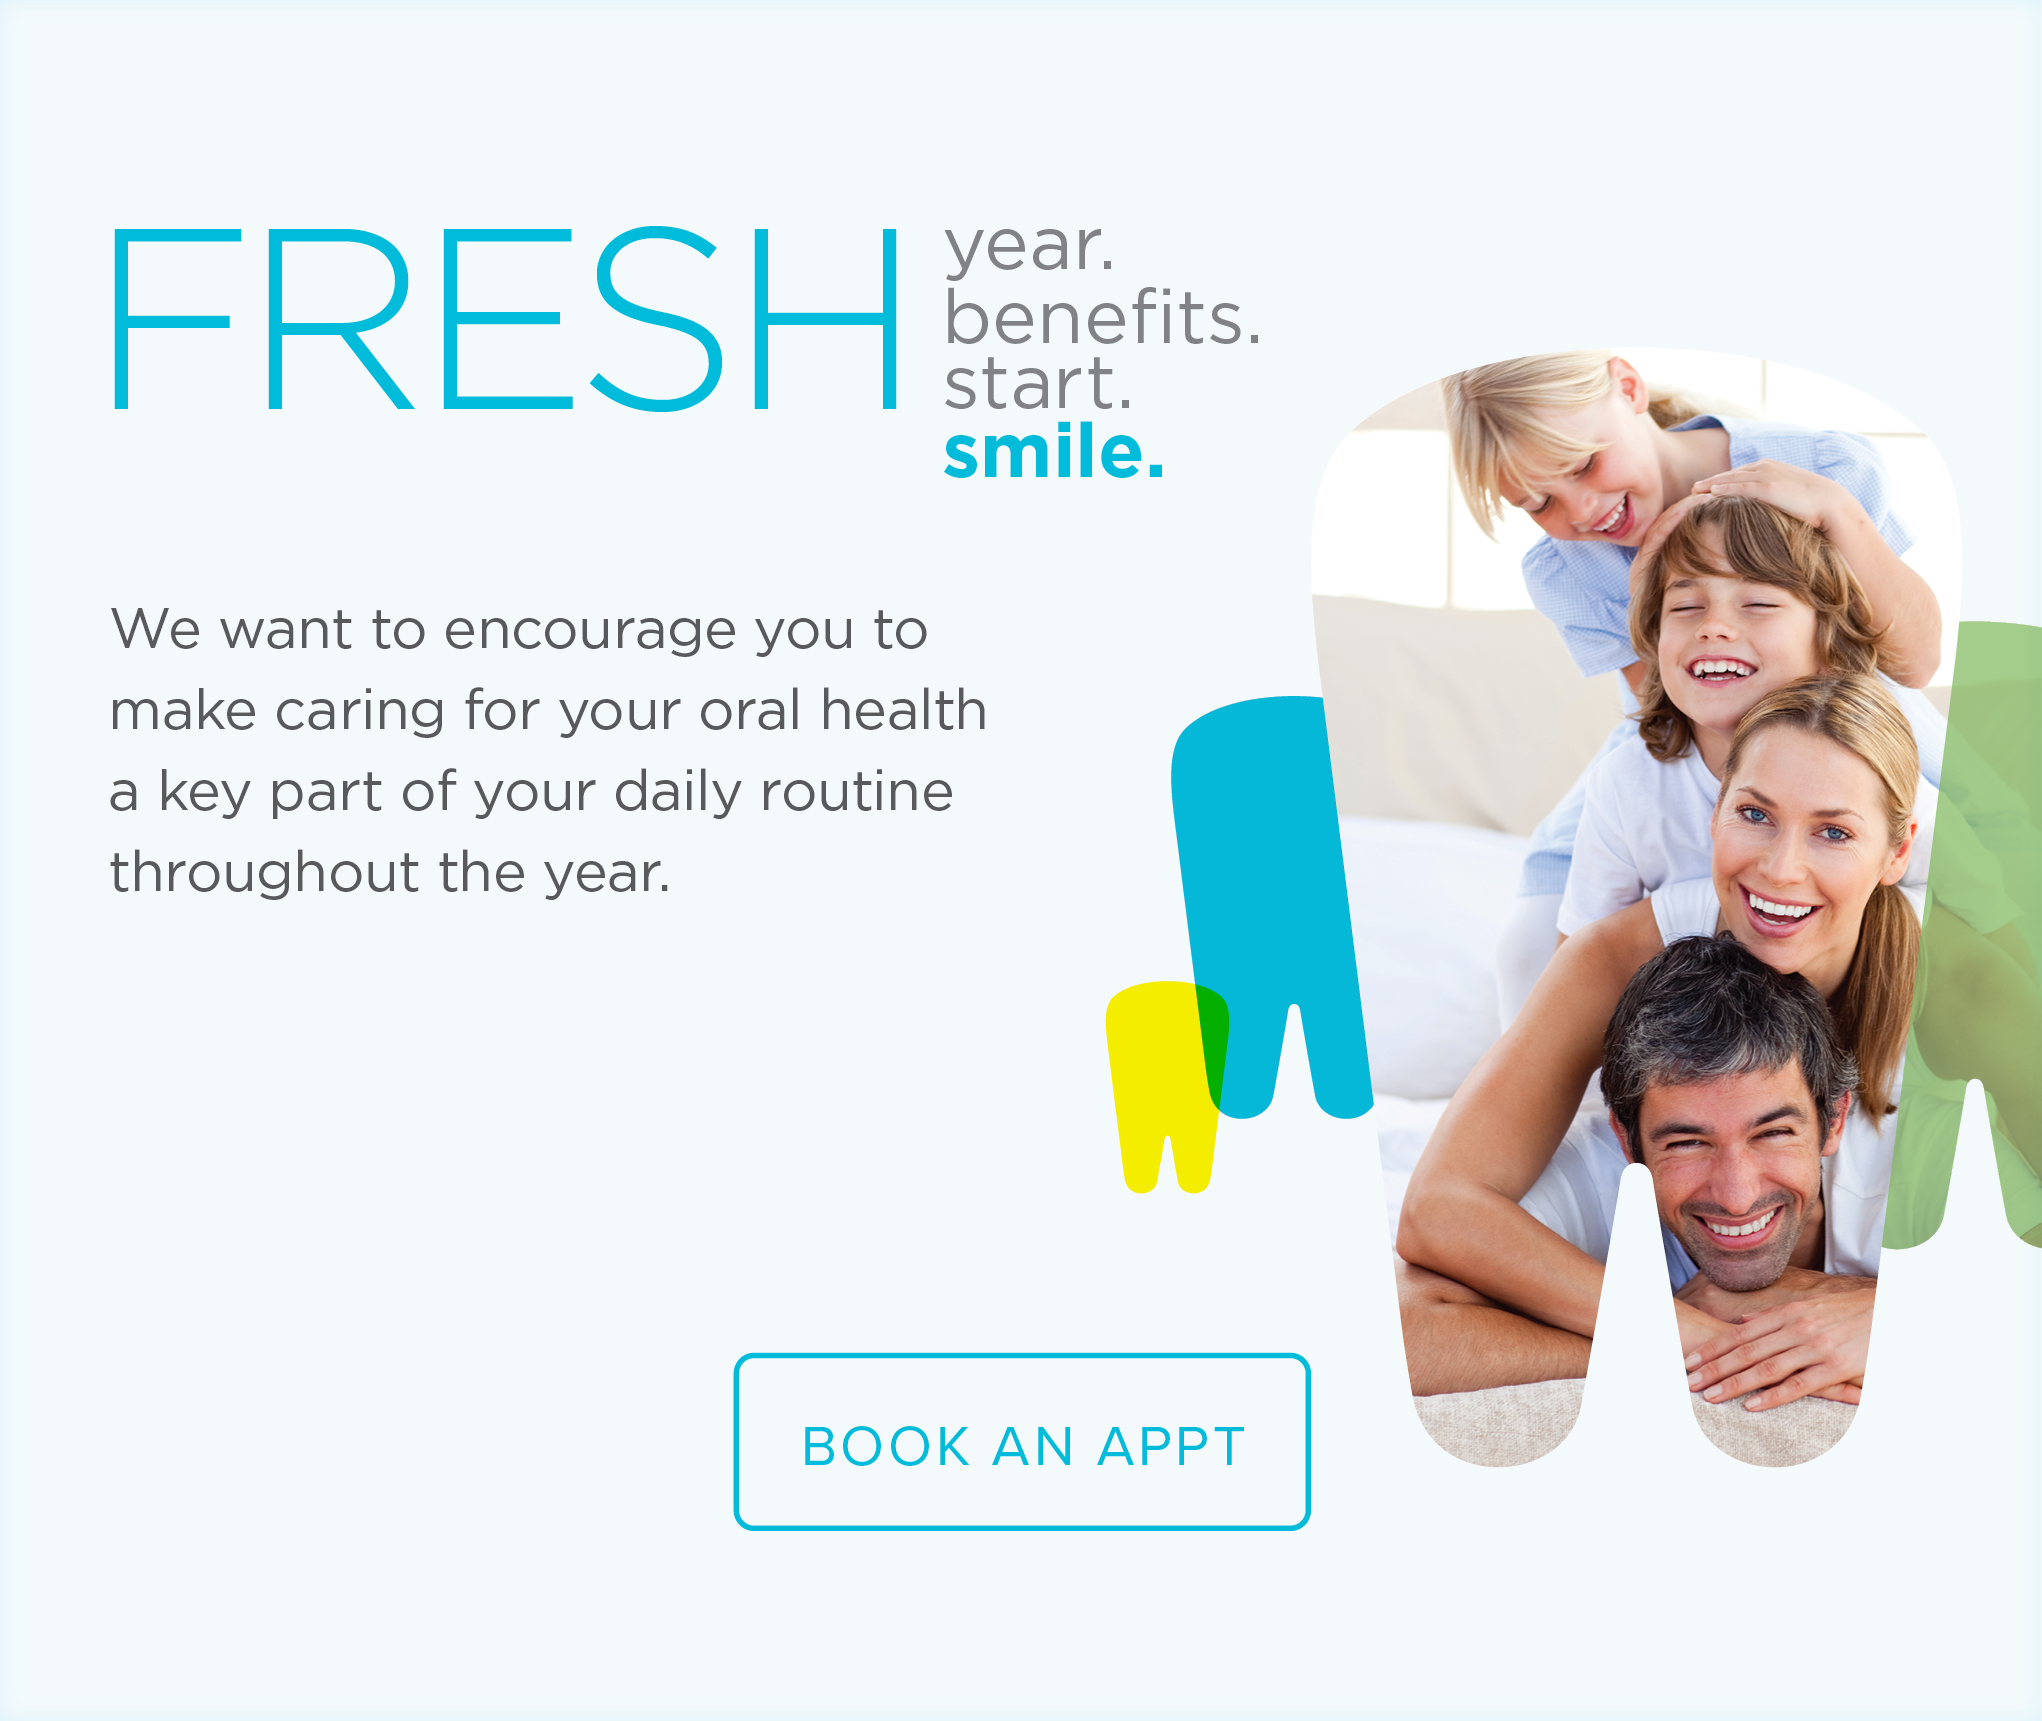 Smokey Point Smiles Dentistry - Make the Most of Your Benefits